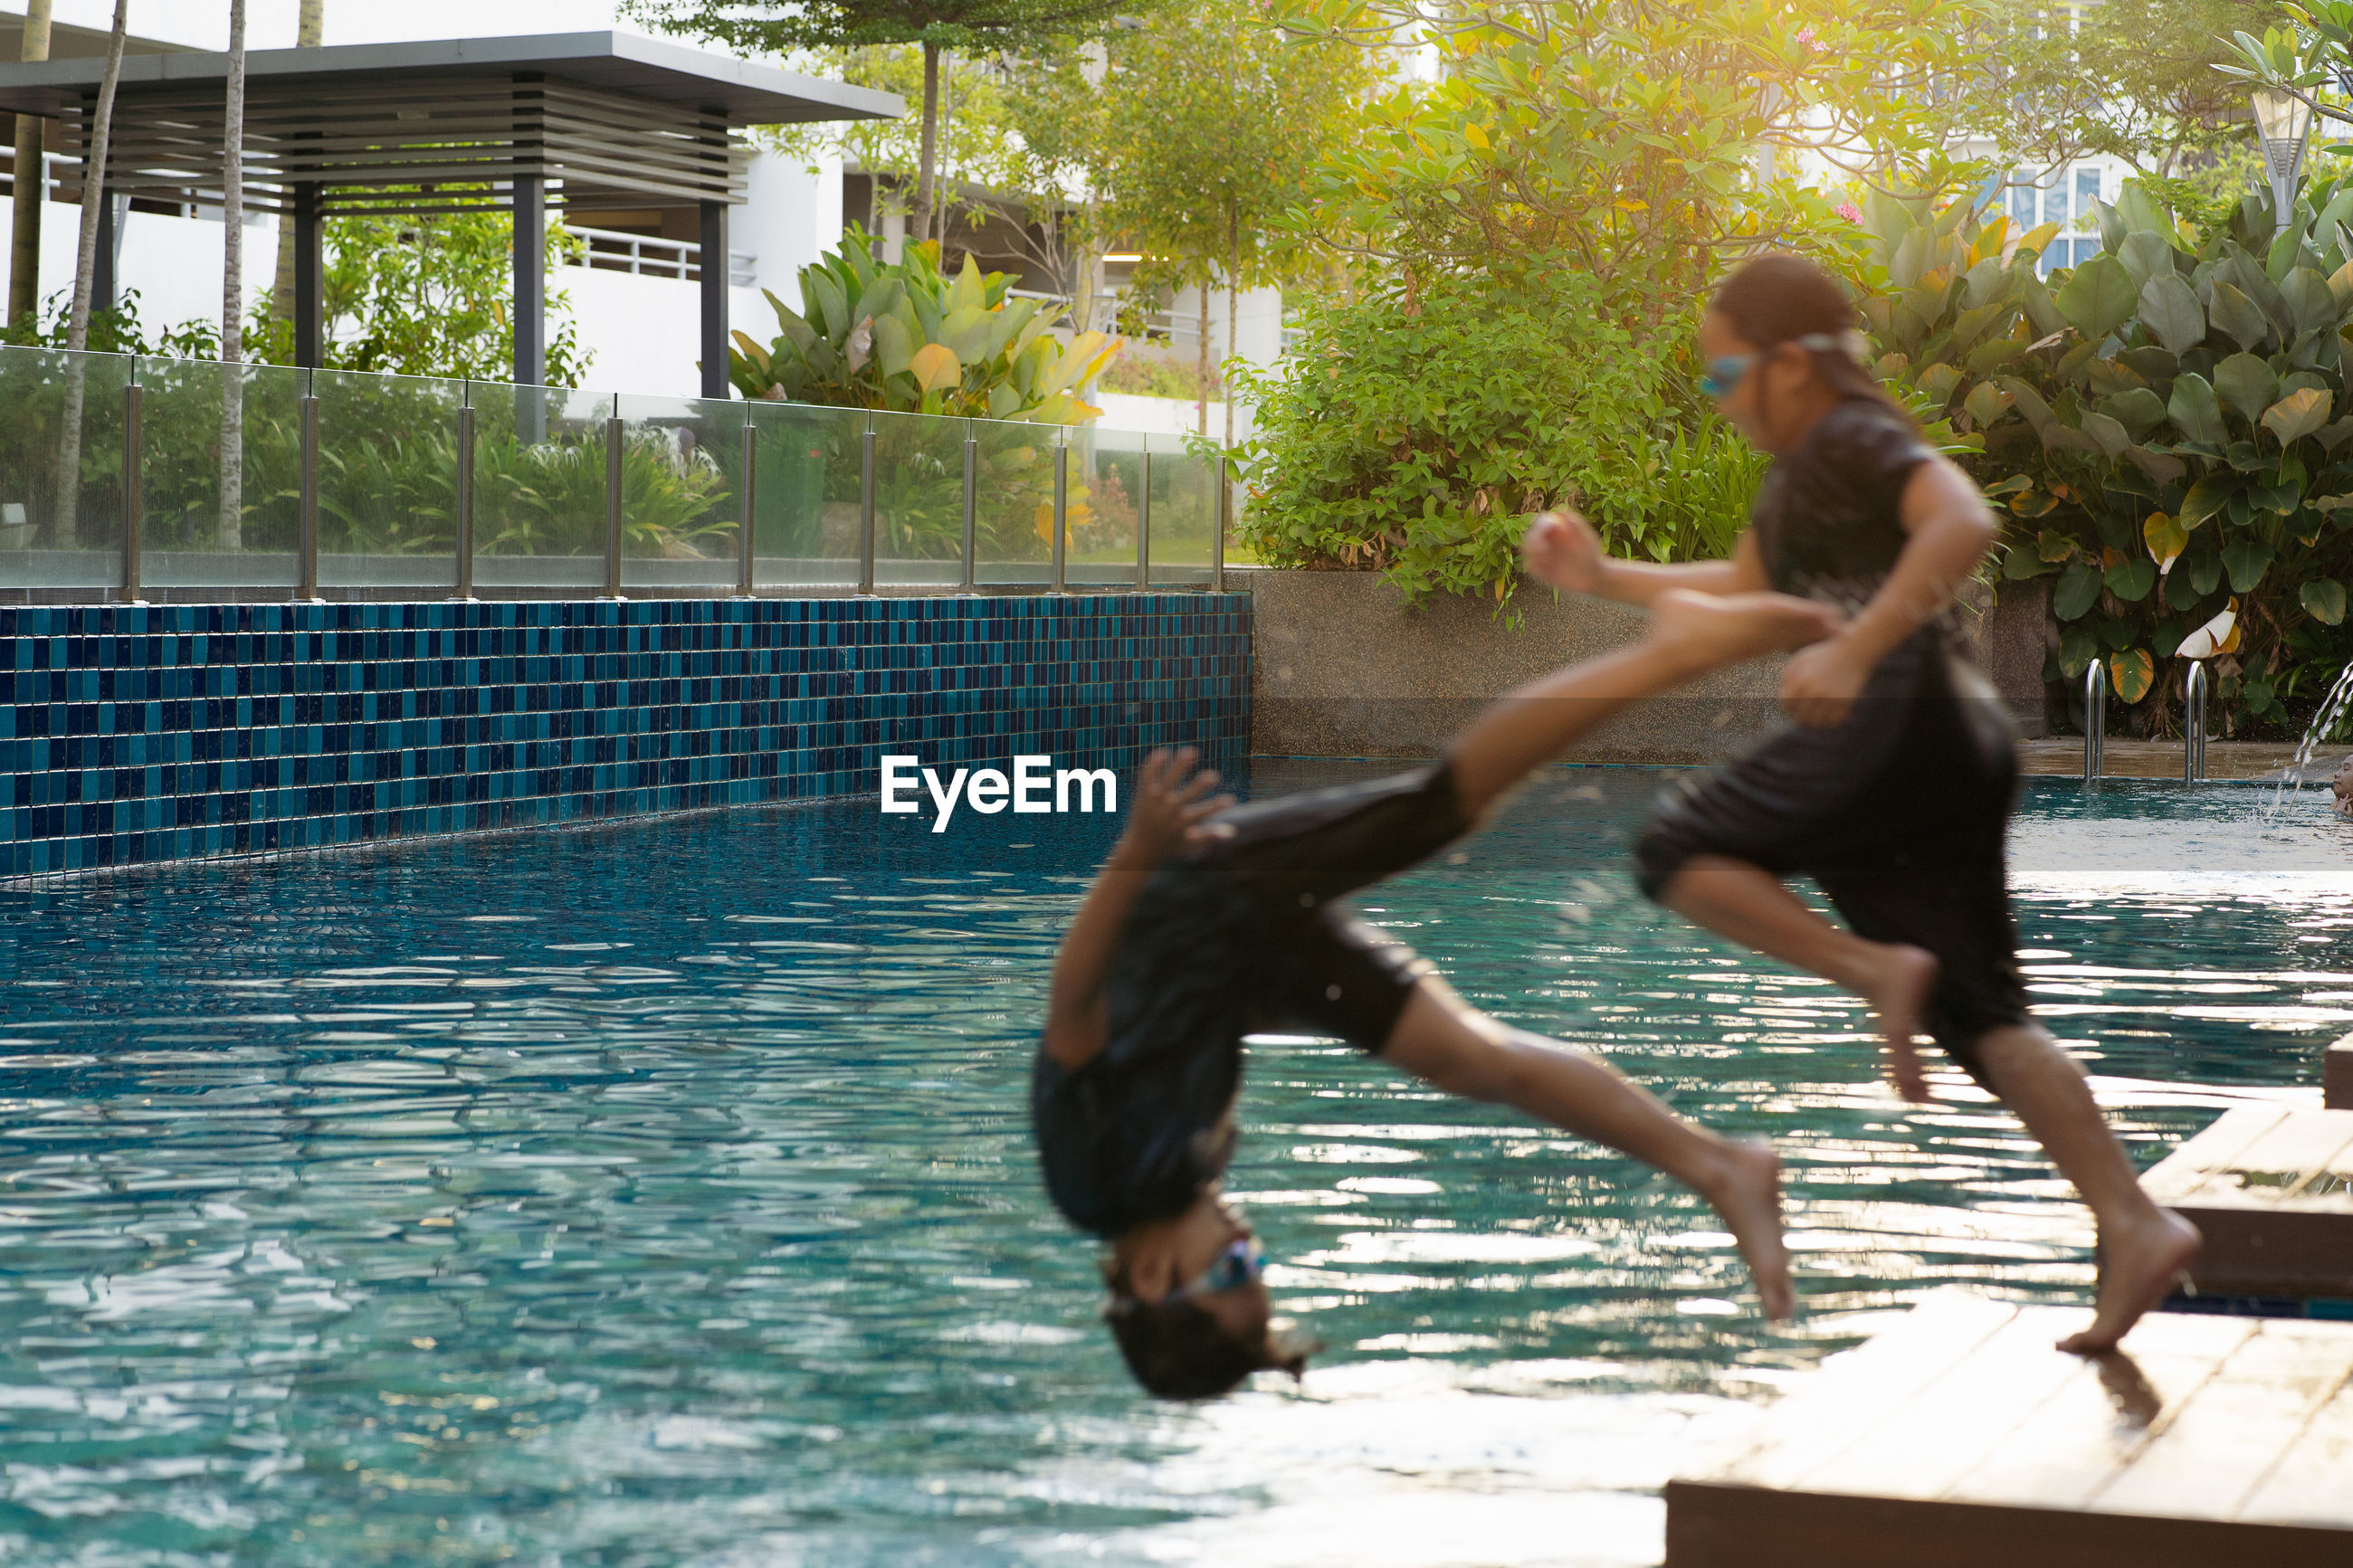 MAN JUMPING IN SWIMMING POOL AGAINST TREES